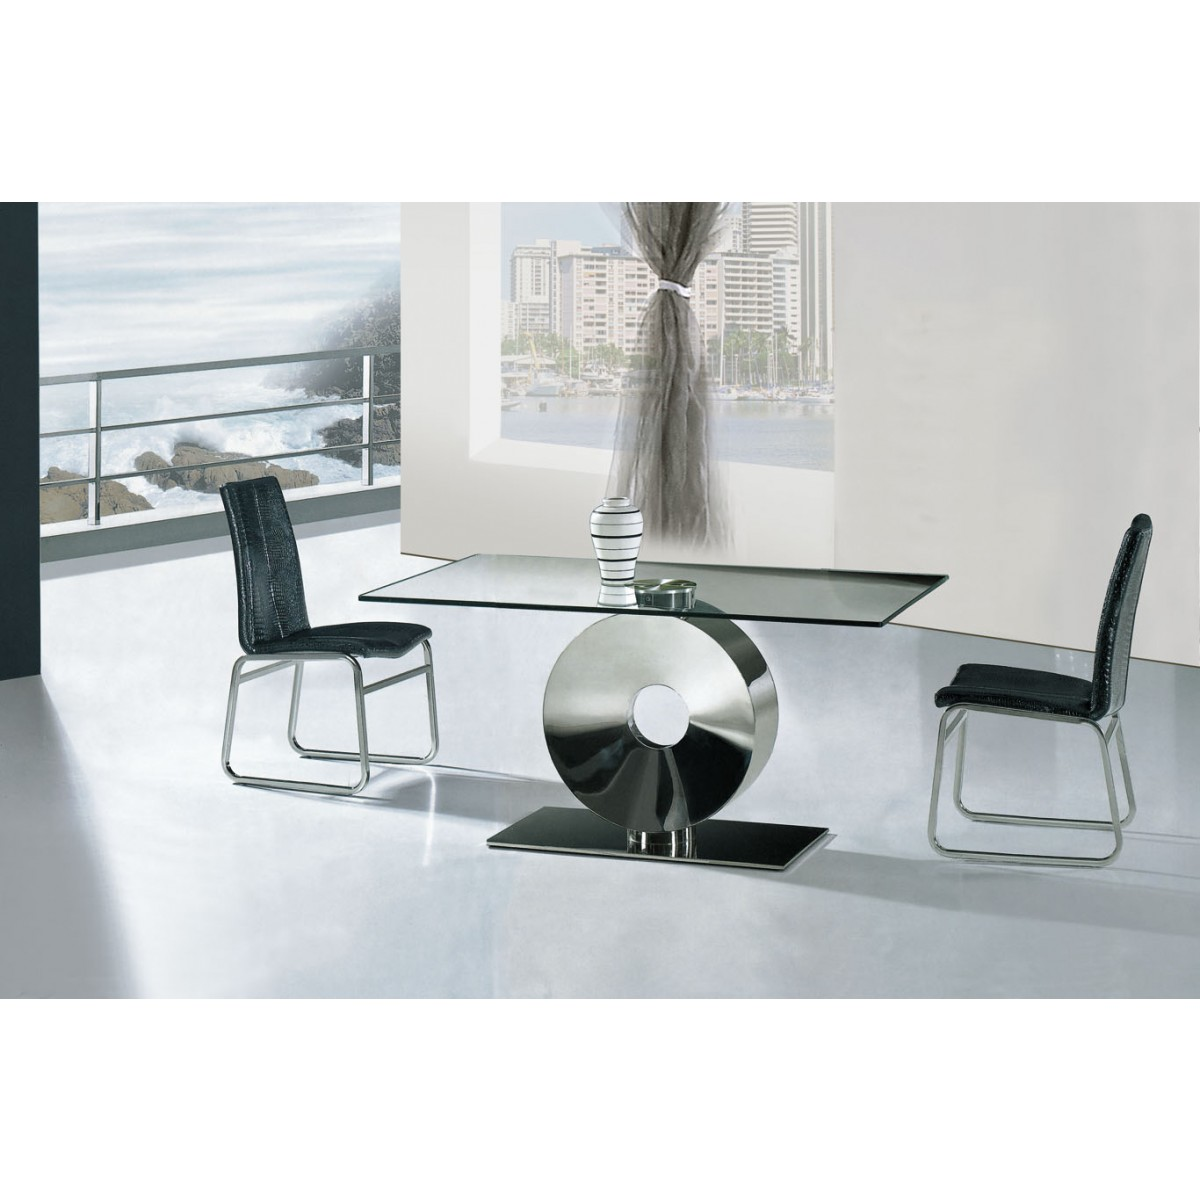 Table de salle manger design ring 160cm for Table en verre design salle a manger